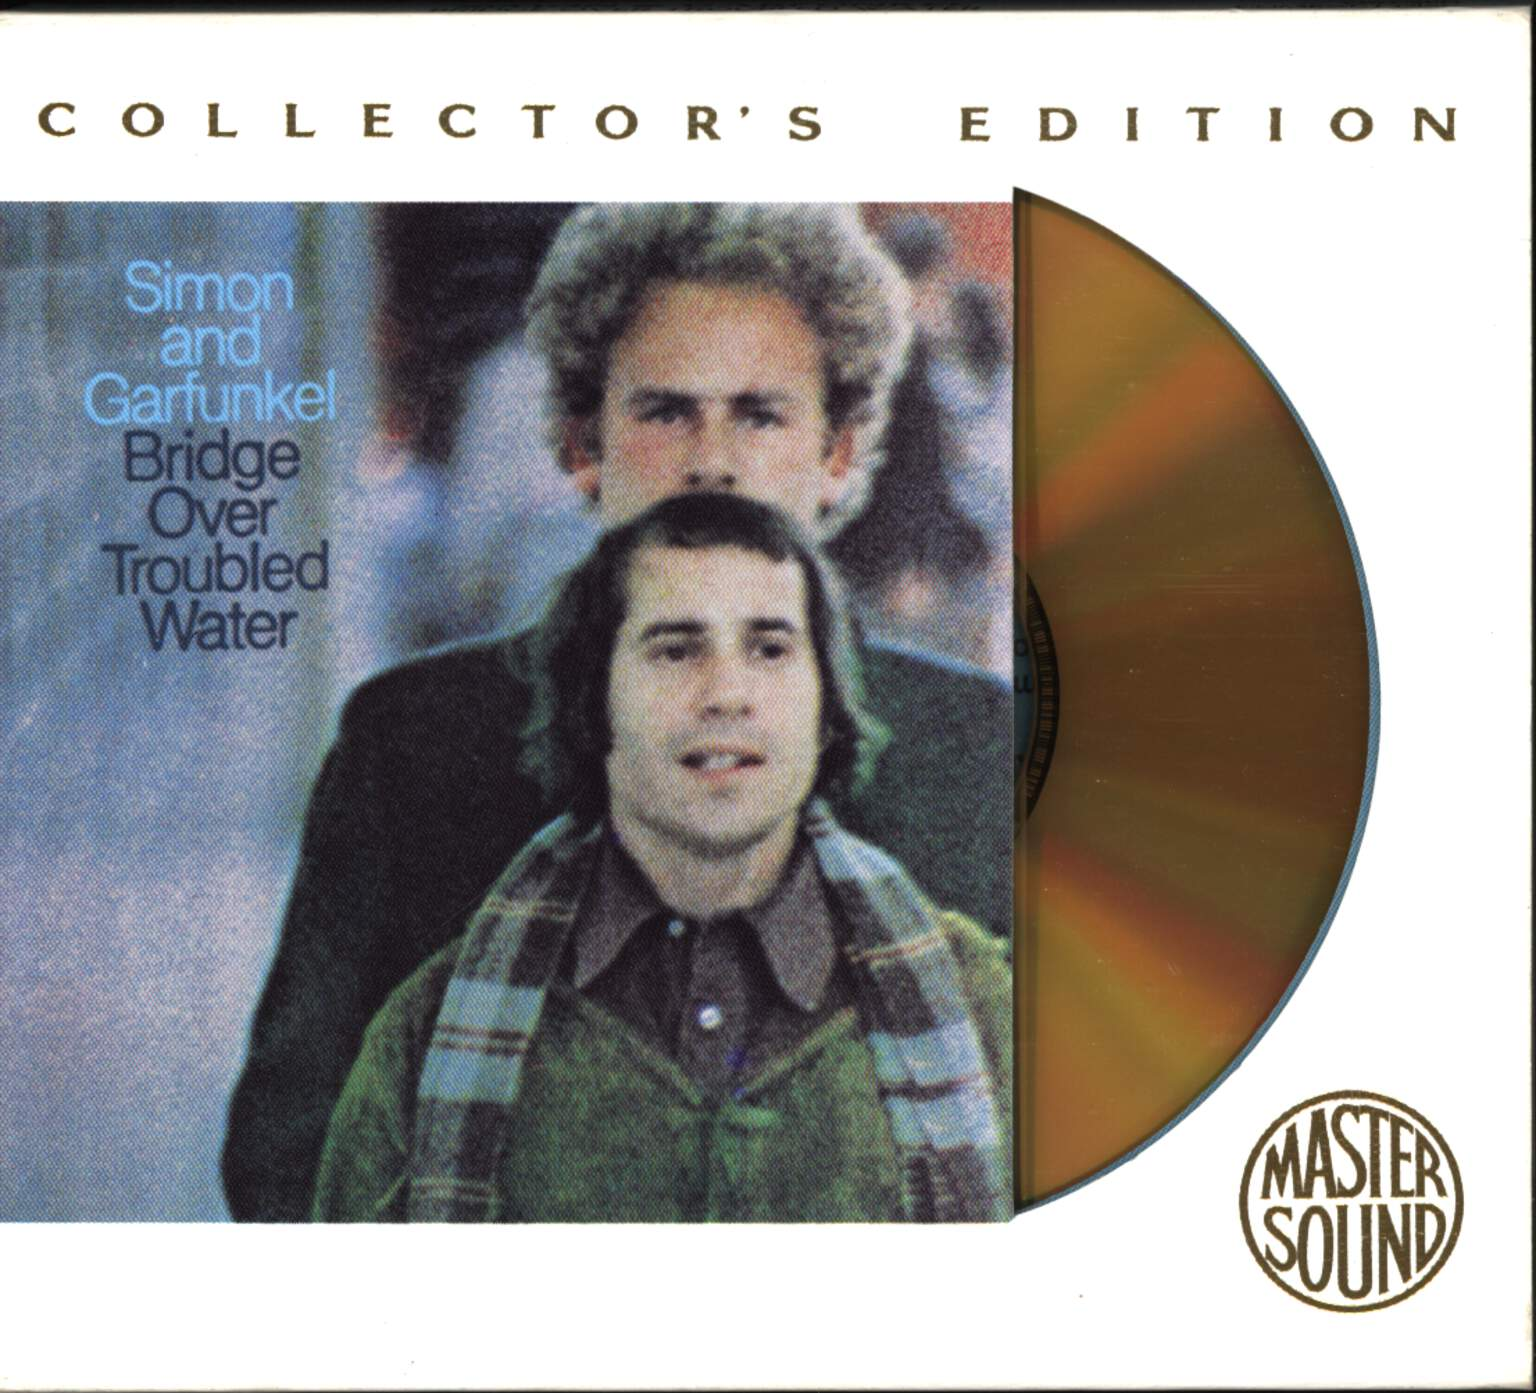 Simon & Garfunkel: Bridge Over Troubled Water, CD